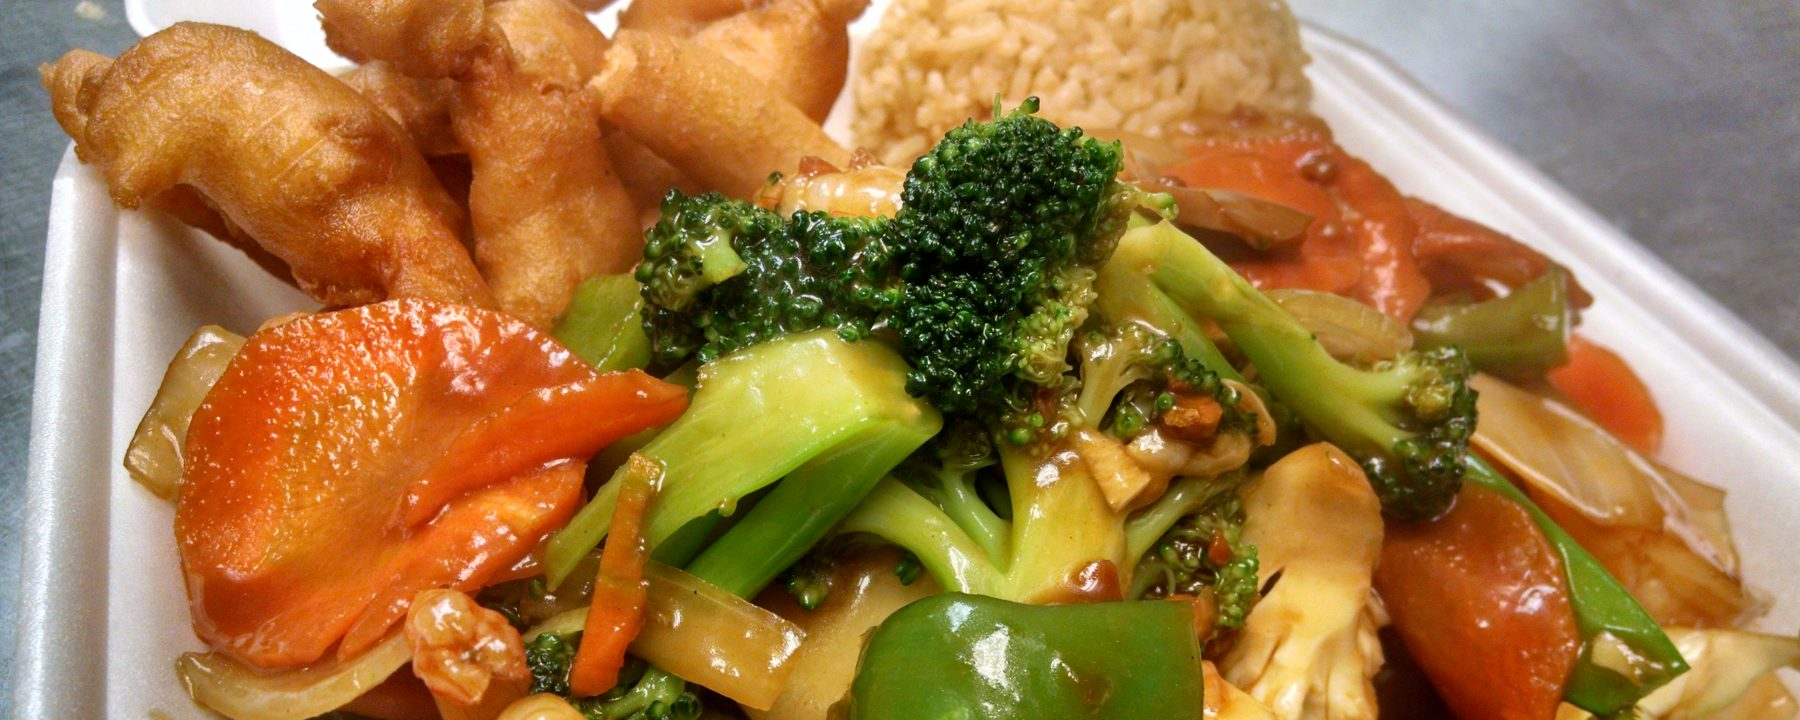 Chicken And Broccoli In Wok